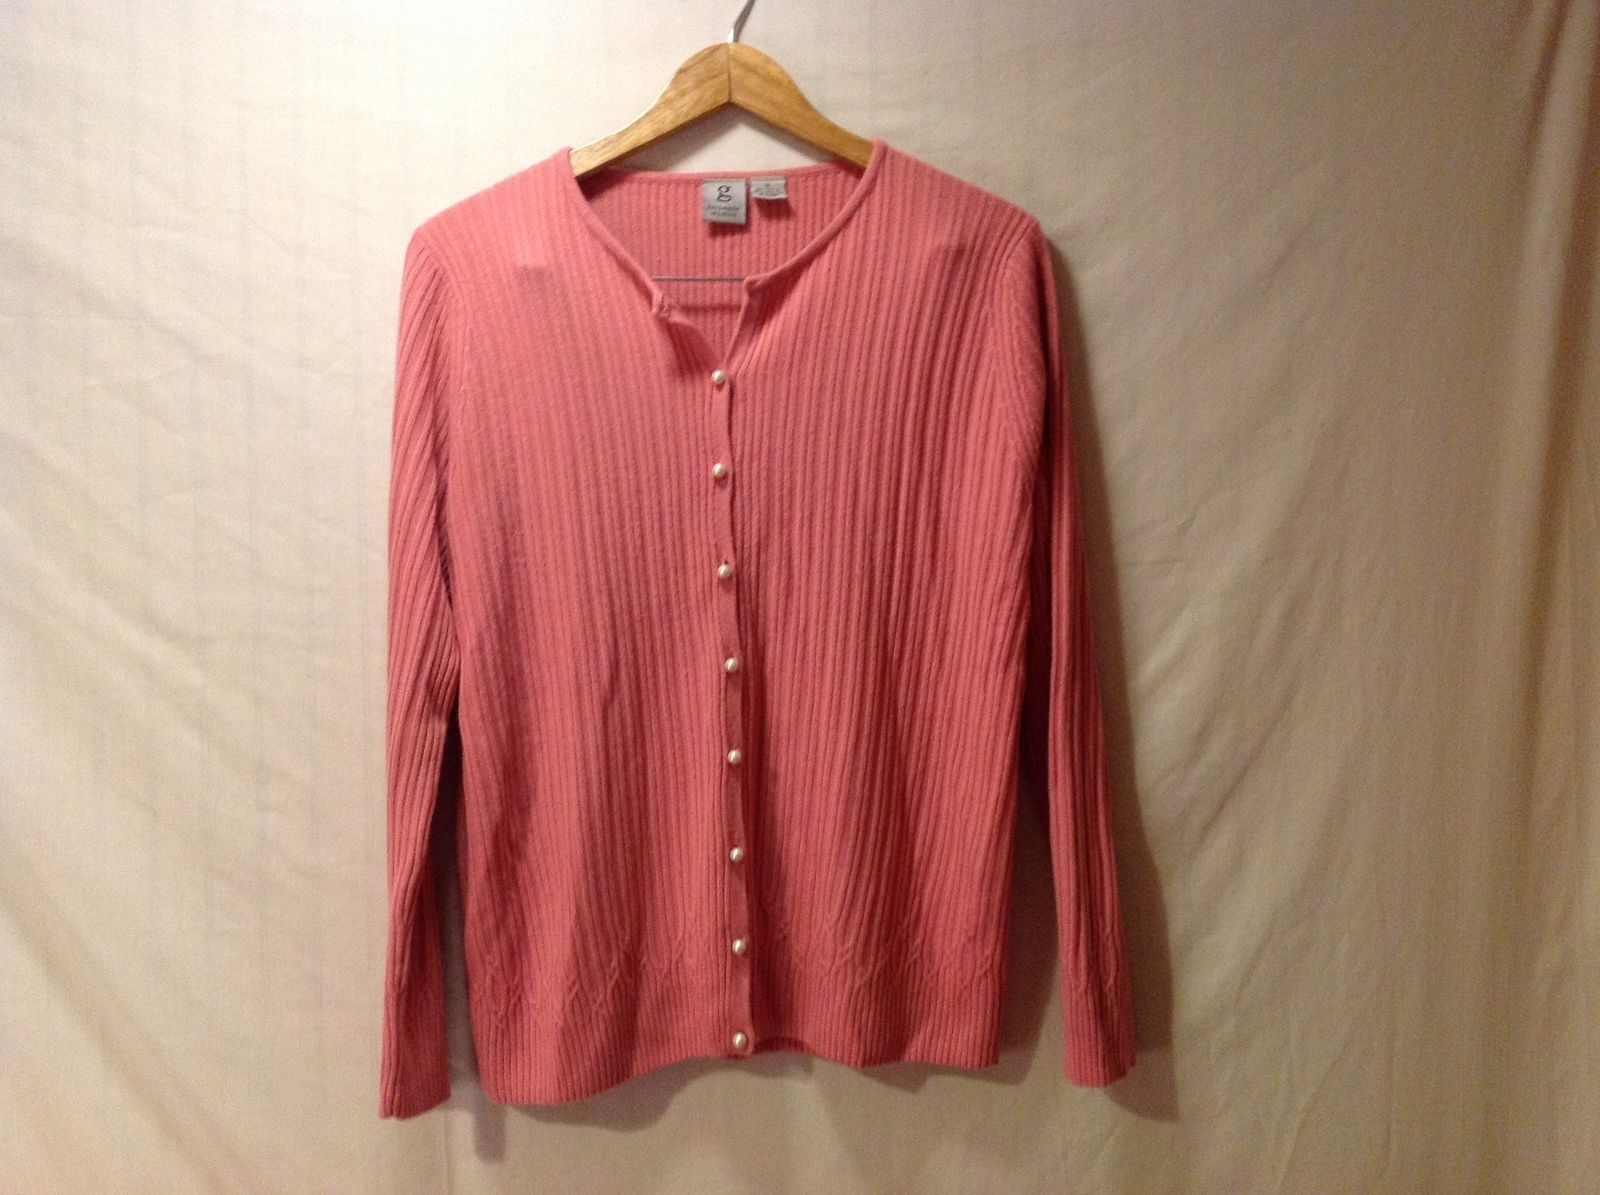 G Knitwear Woman Women's Rose Colored Cardigan  Size XL